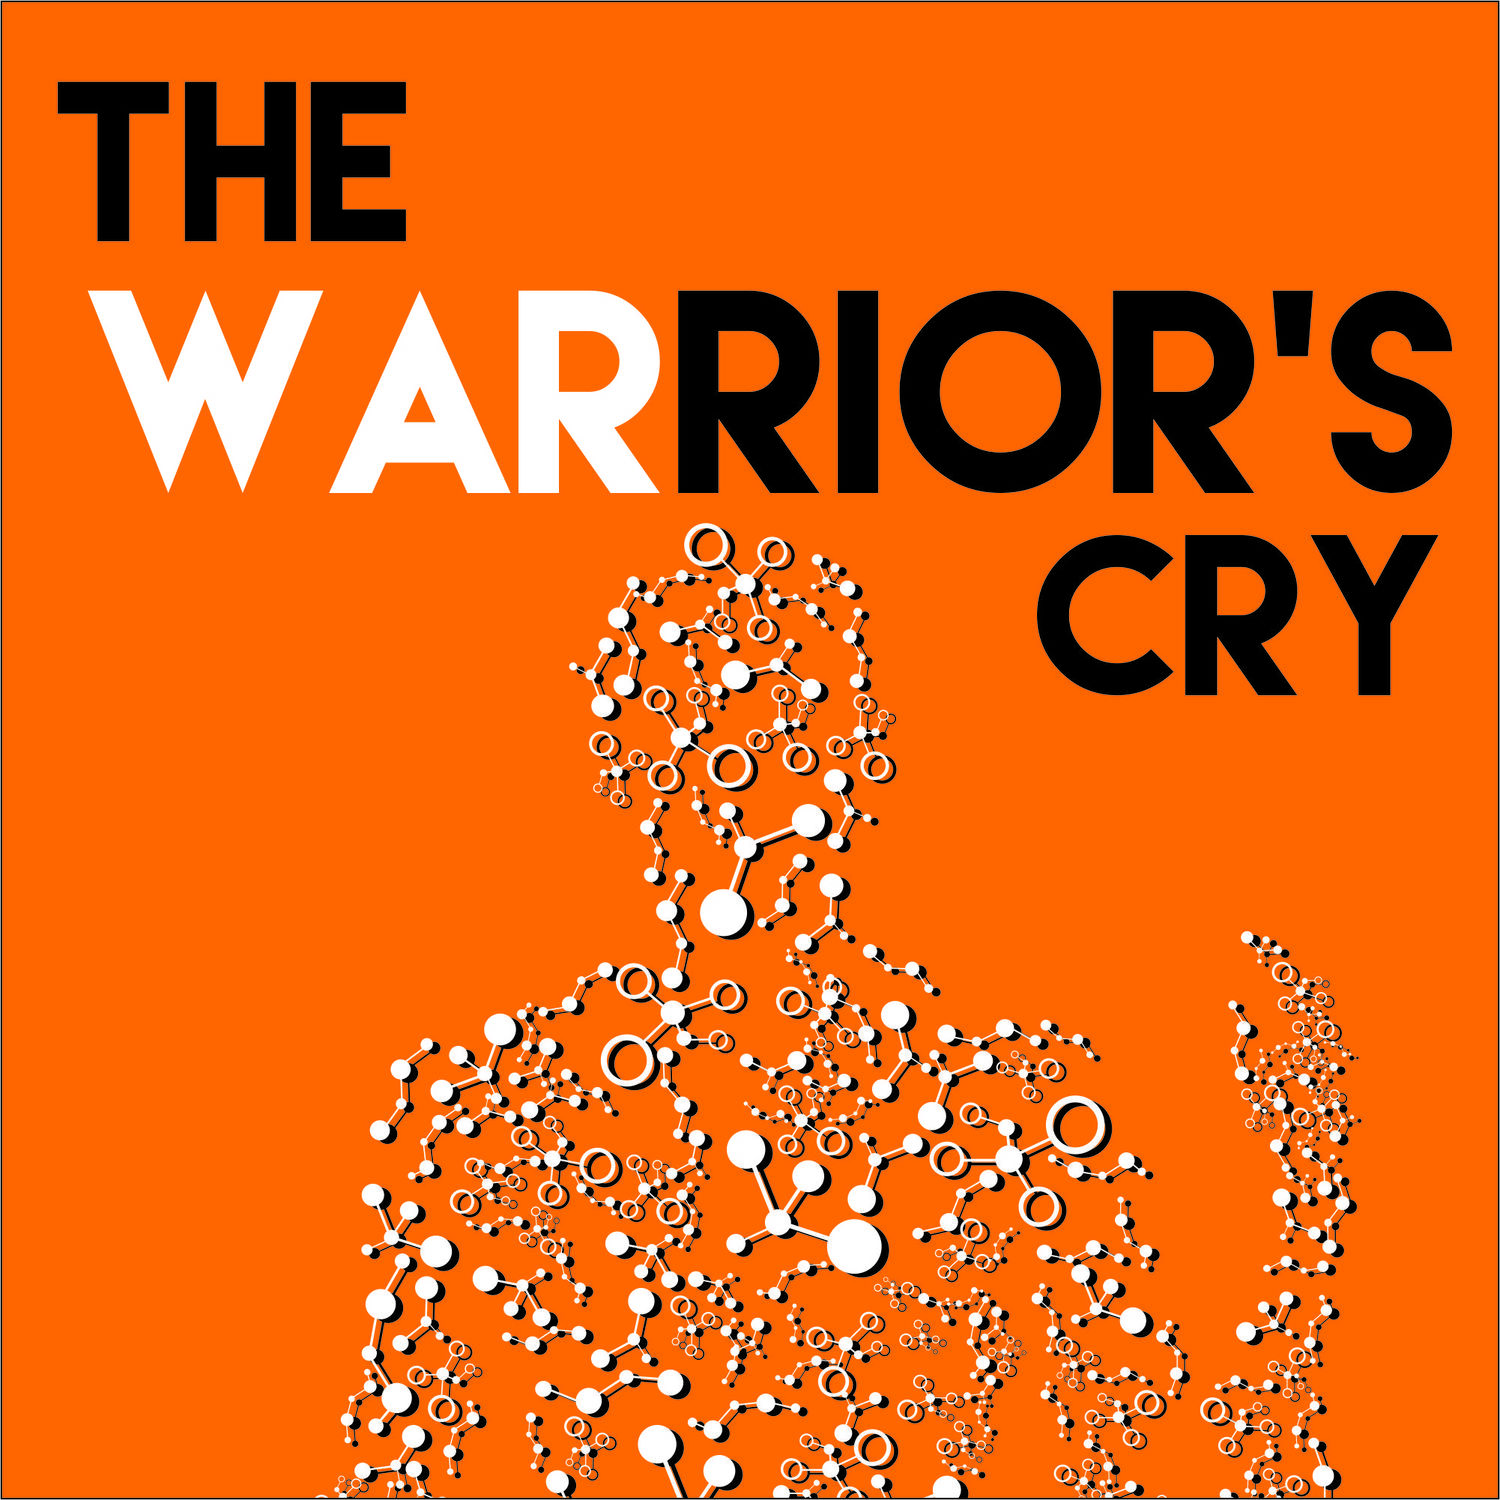 The Warrior's Cry